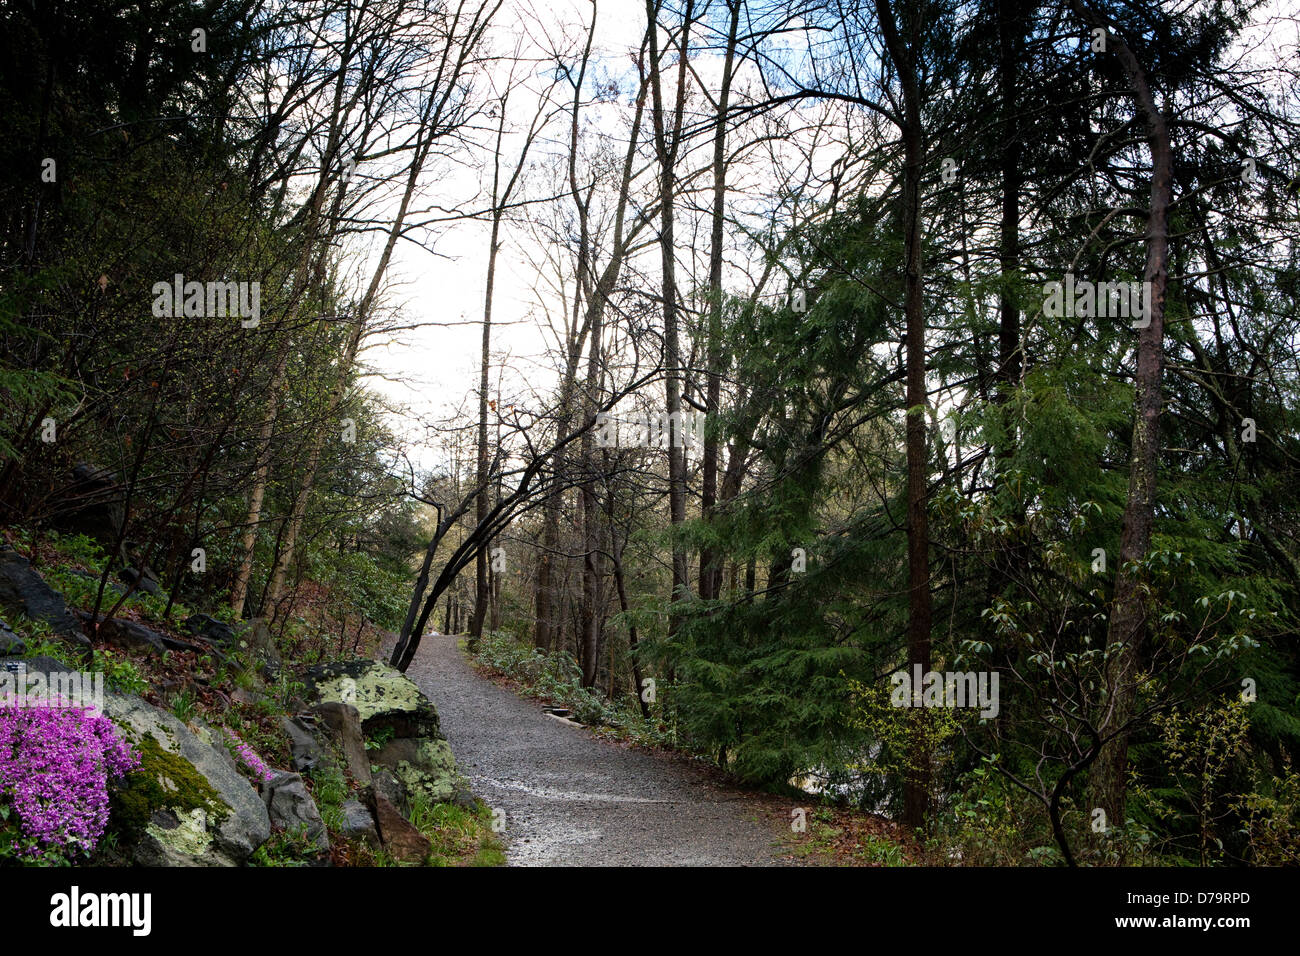 A view of a path in the Botanical Gardens in Asheville, North Carolina - Stock Image